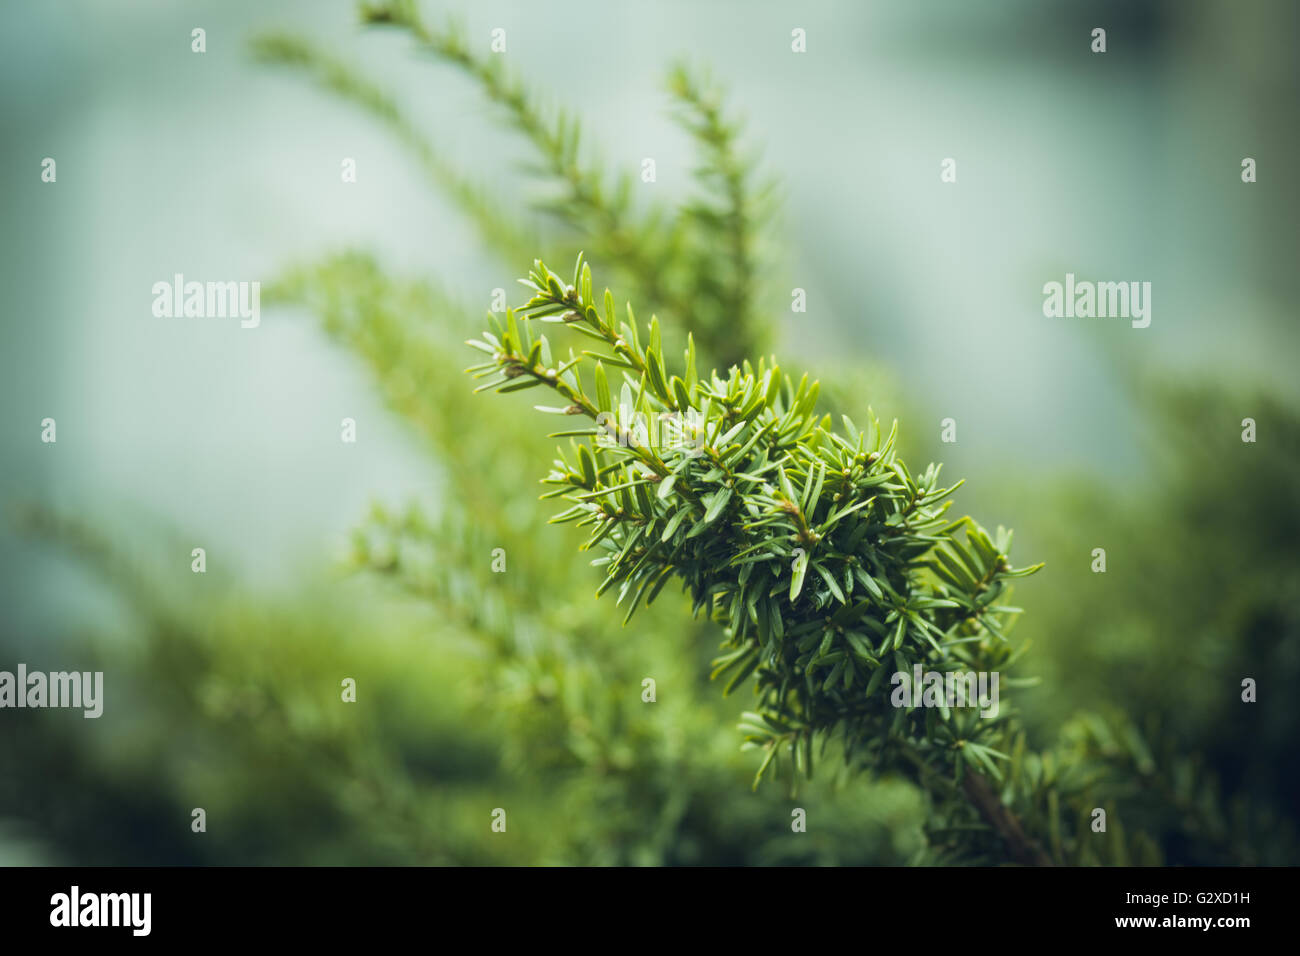 Taxus (Yew tree) in the garden. Selective focus. Shallow depth of field. Toned image. - Stock Image